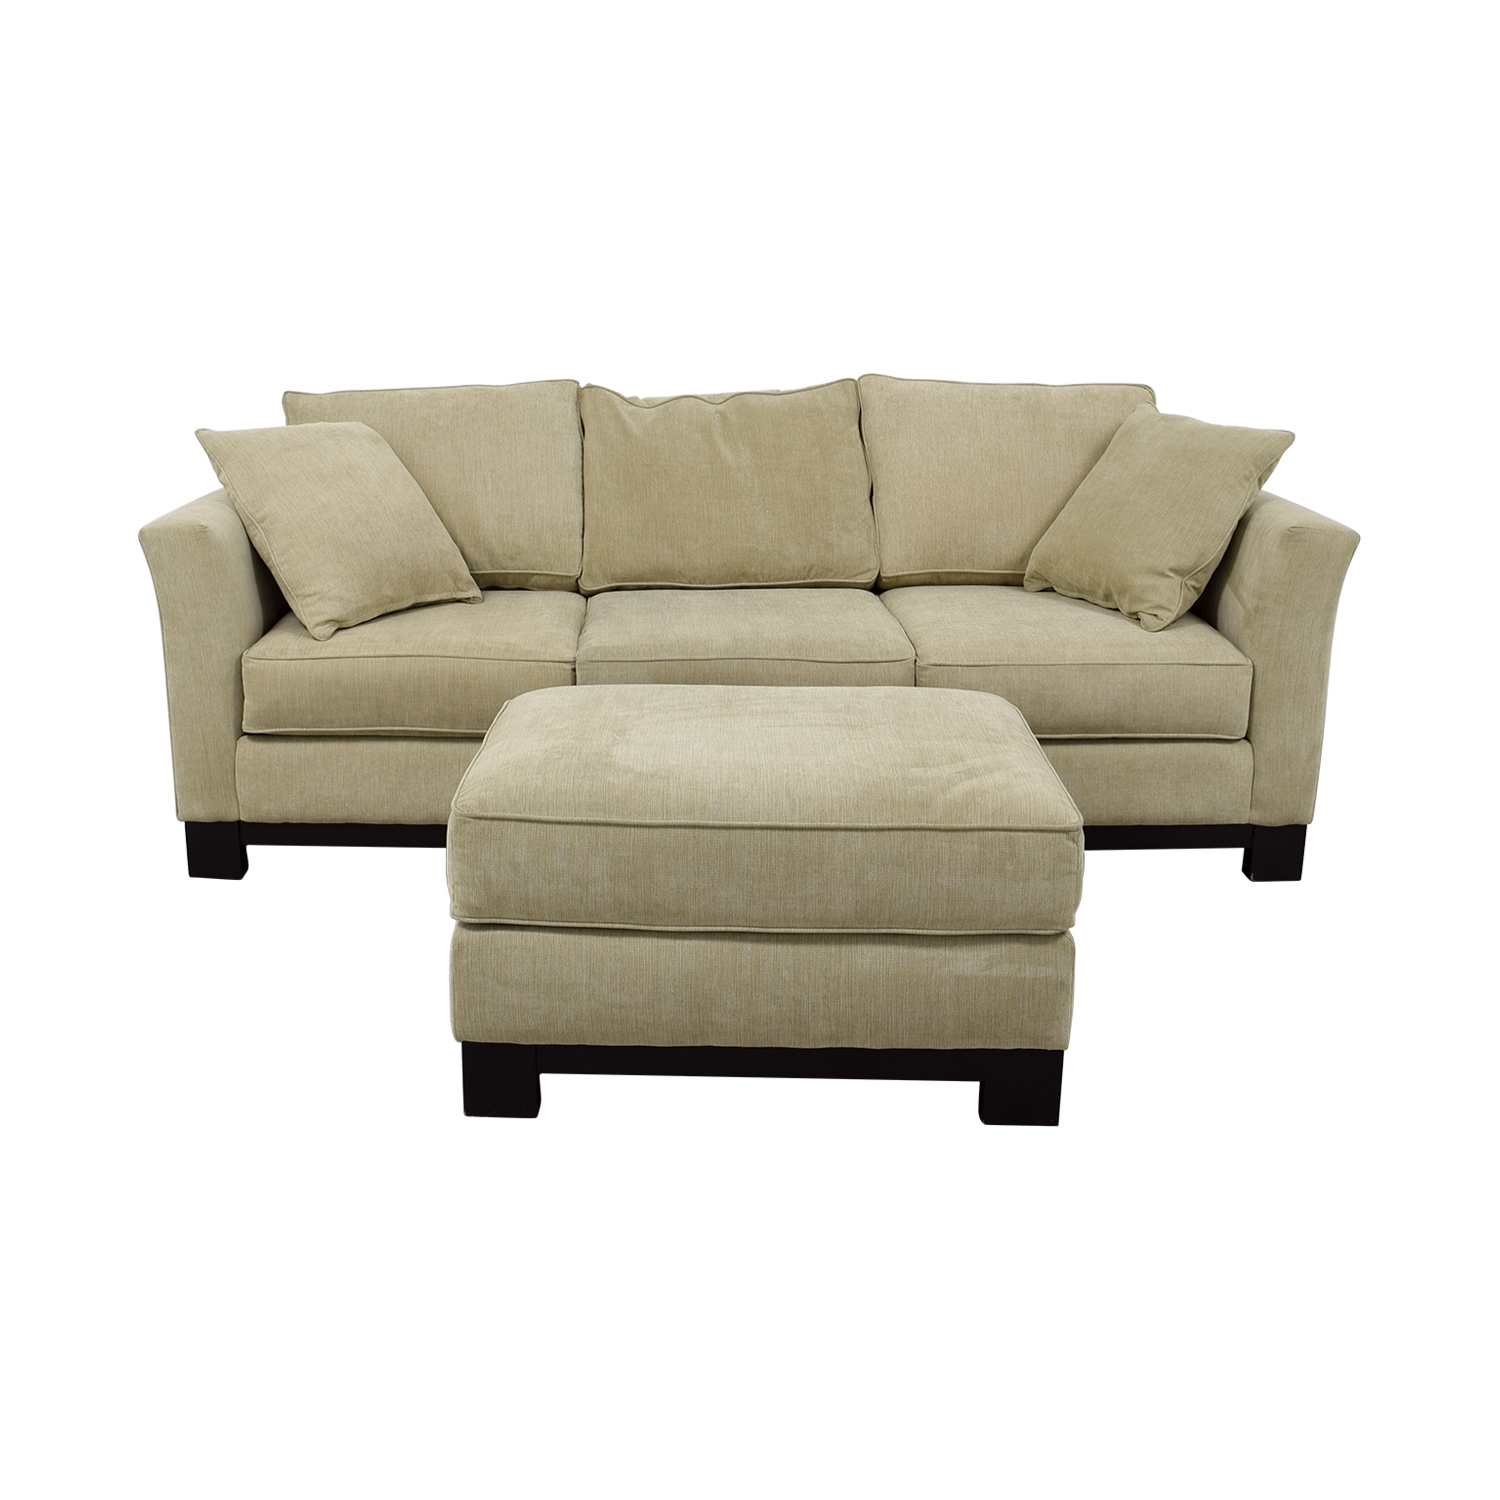 [%60% Off – Macy's Macy's Grey Fabric Couch And Large Ottoman / Sofas With Most Current Sofas With Large Ottoman|Sofas With Large Ottoman Intended For Current 60% Off – Macy's Macy's Grey Fabric Couch And Large Ottoman / Sofas|Well Known Sofas With Large Ottoman With 60% Off – Macy's Macy's Grey Fabric Couch And Large Ottoman / Sofas|Trendy 60% Off – Macy's Macy's Grey Fabric Couch And Large Ottoman / Sofas With Regard To Sofas With Large Ottoman%] (View 15 of 15)